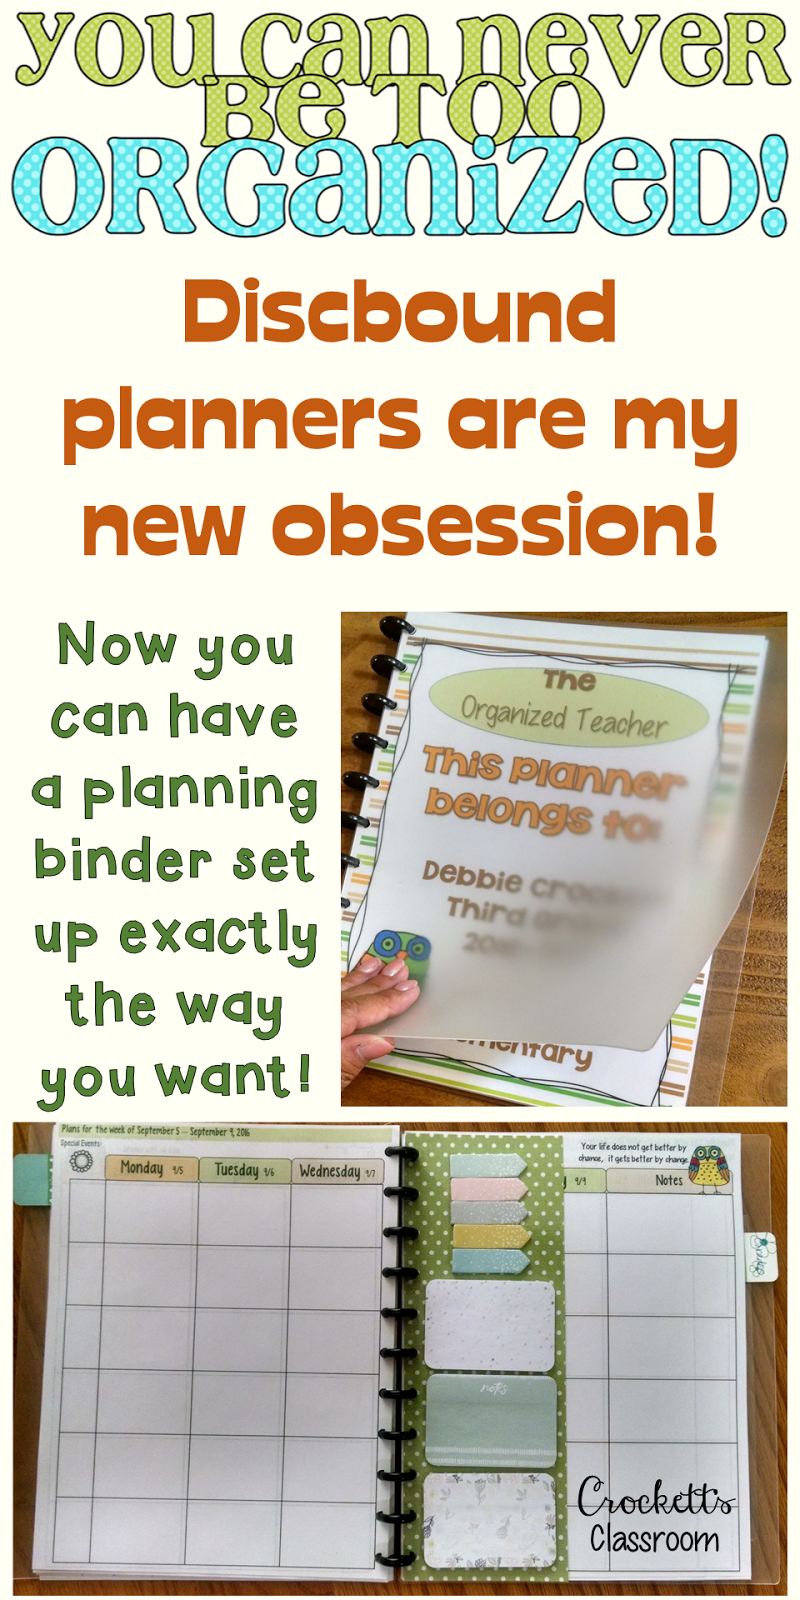 uo forever templates - teacher planner my new obsession crockett 39 s classroom